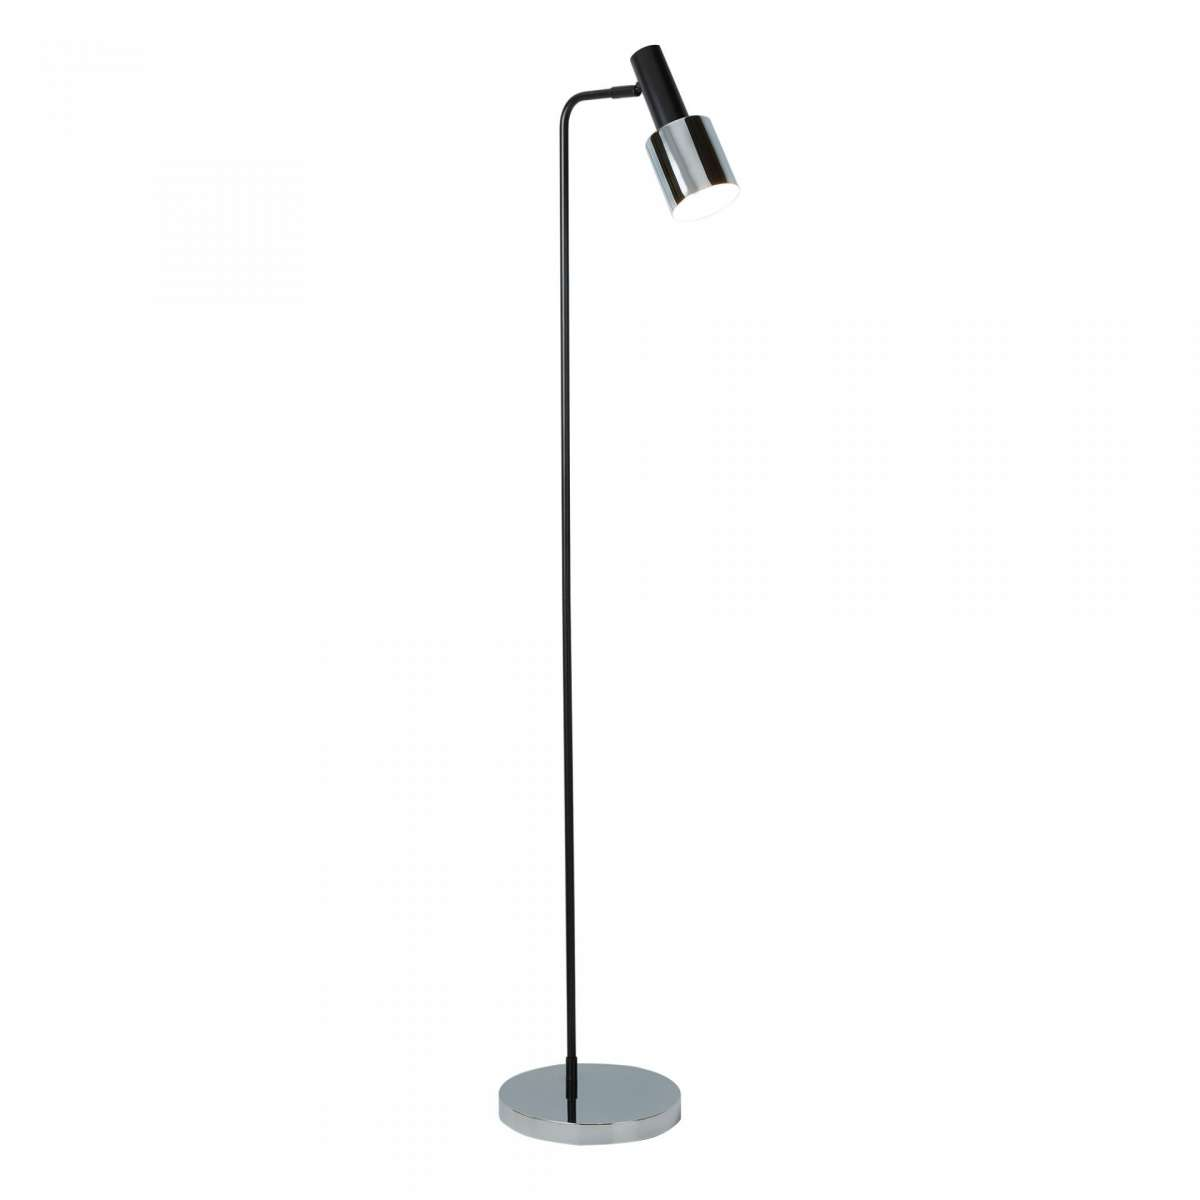 1 Light Floor Lamp, Black, Chrome